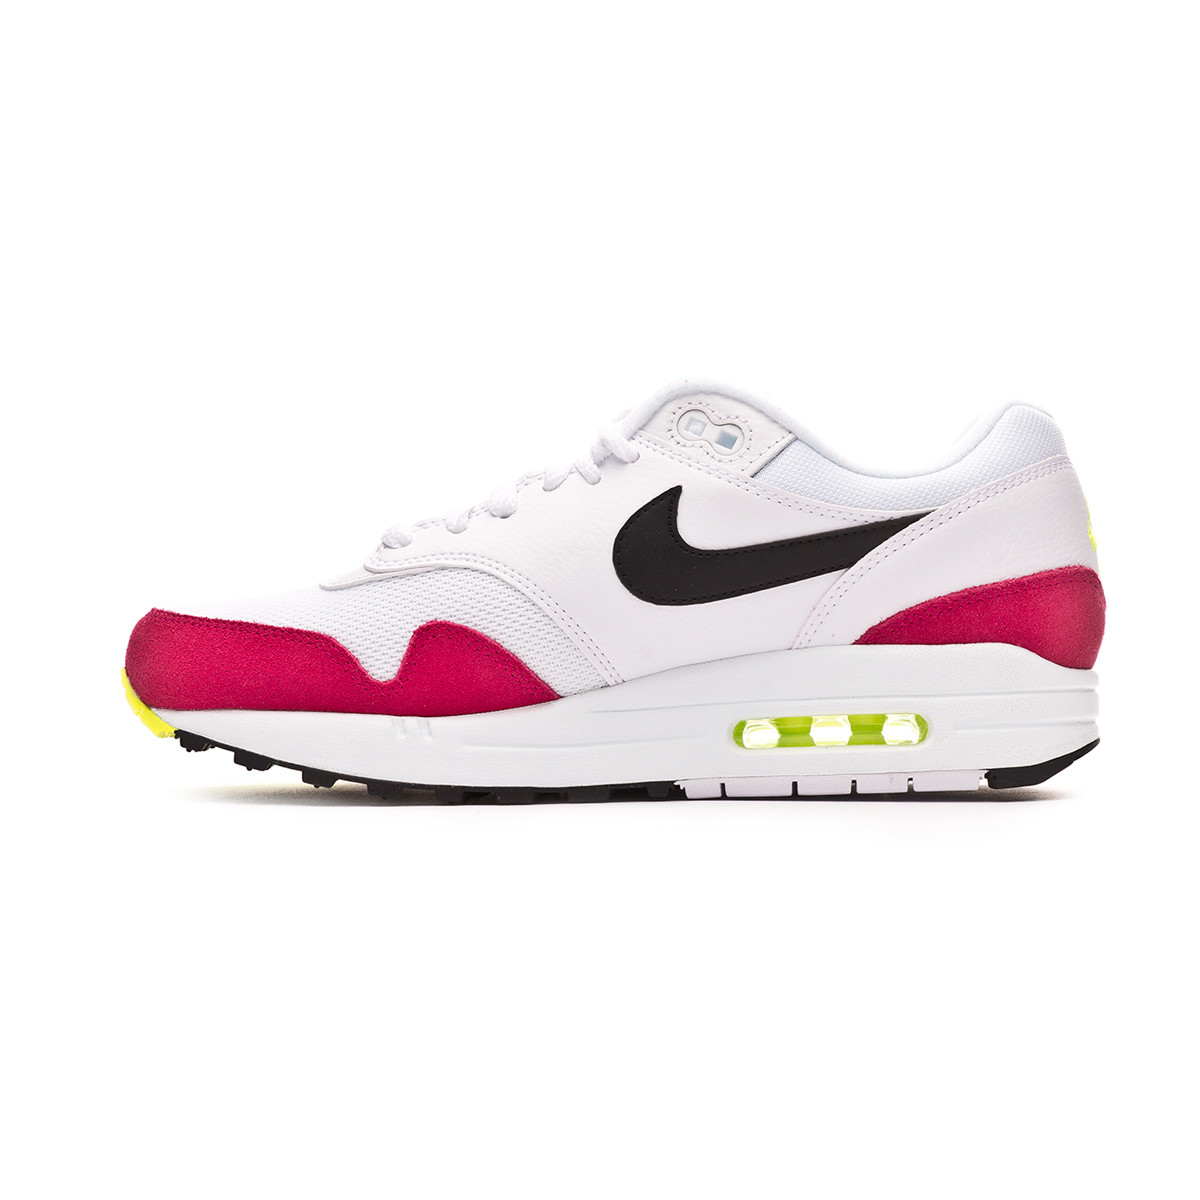 reputable site 6de90 5f8c1 Trainers Nike Air Max 1 White-Black-Volt-Rush pink - Football store Fútbol  Emotion